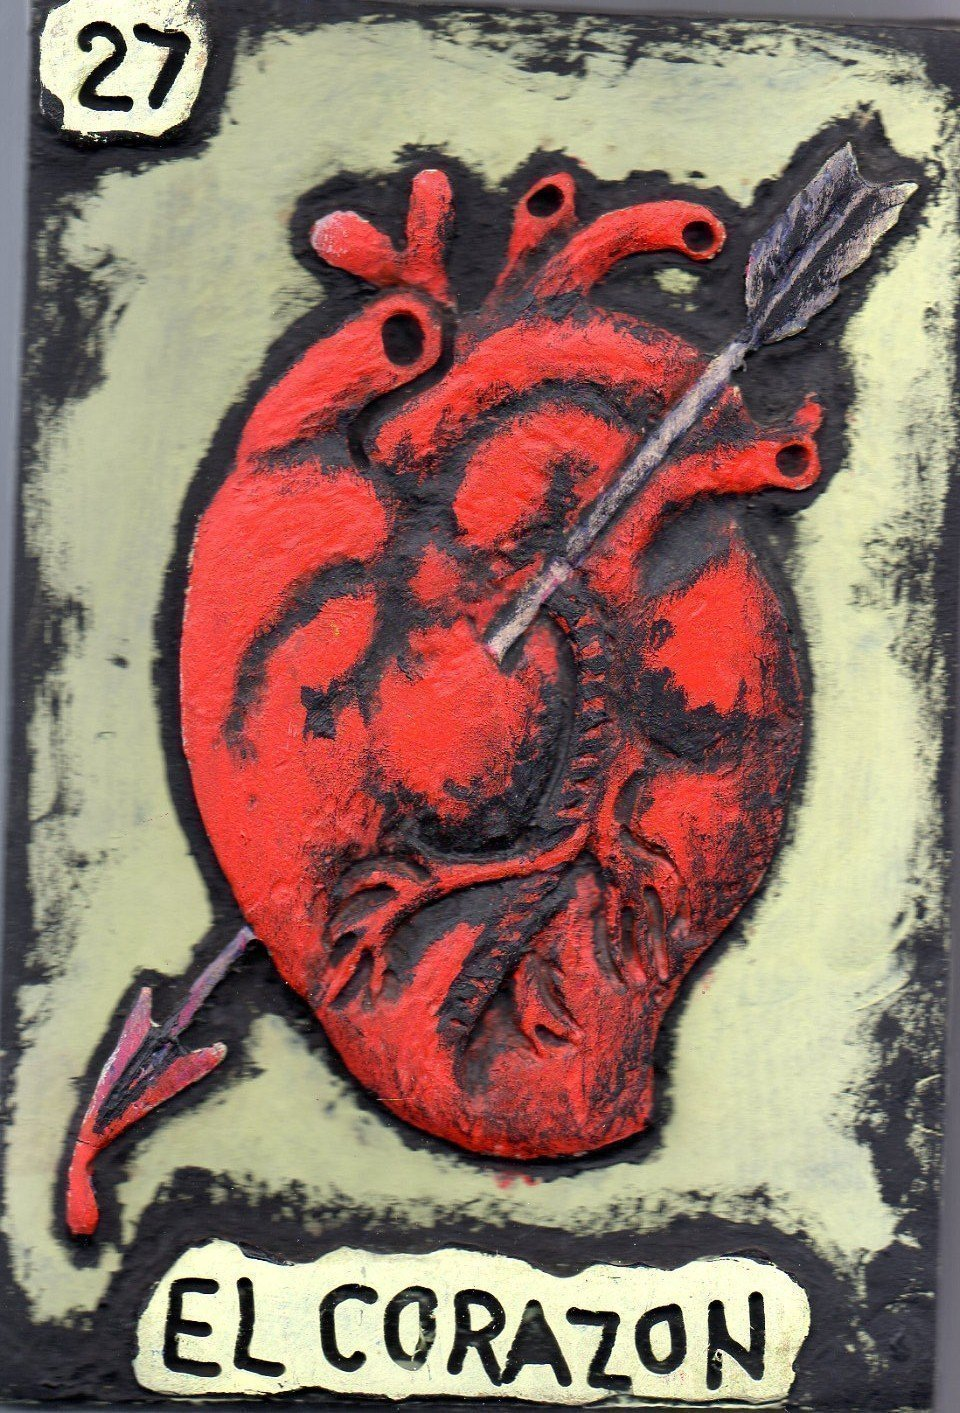 Mexican Loteria, Carved and Painted Wooden Wall Art, El Corazon (#27), Handmade Wall Relief Sculpture, measure: approx. 8 X 11'' Made to Order (Allow 1- 4 weeks for production & delivery) by Sanchezz Wood Art